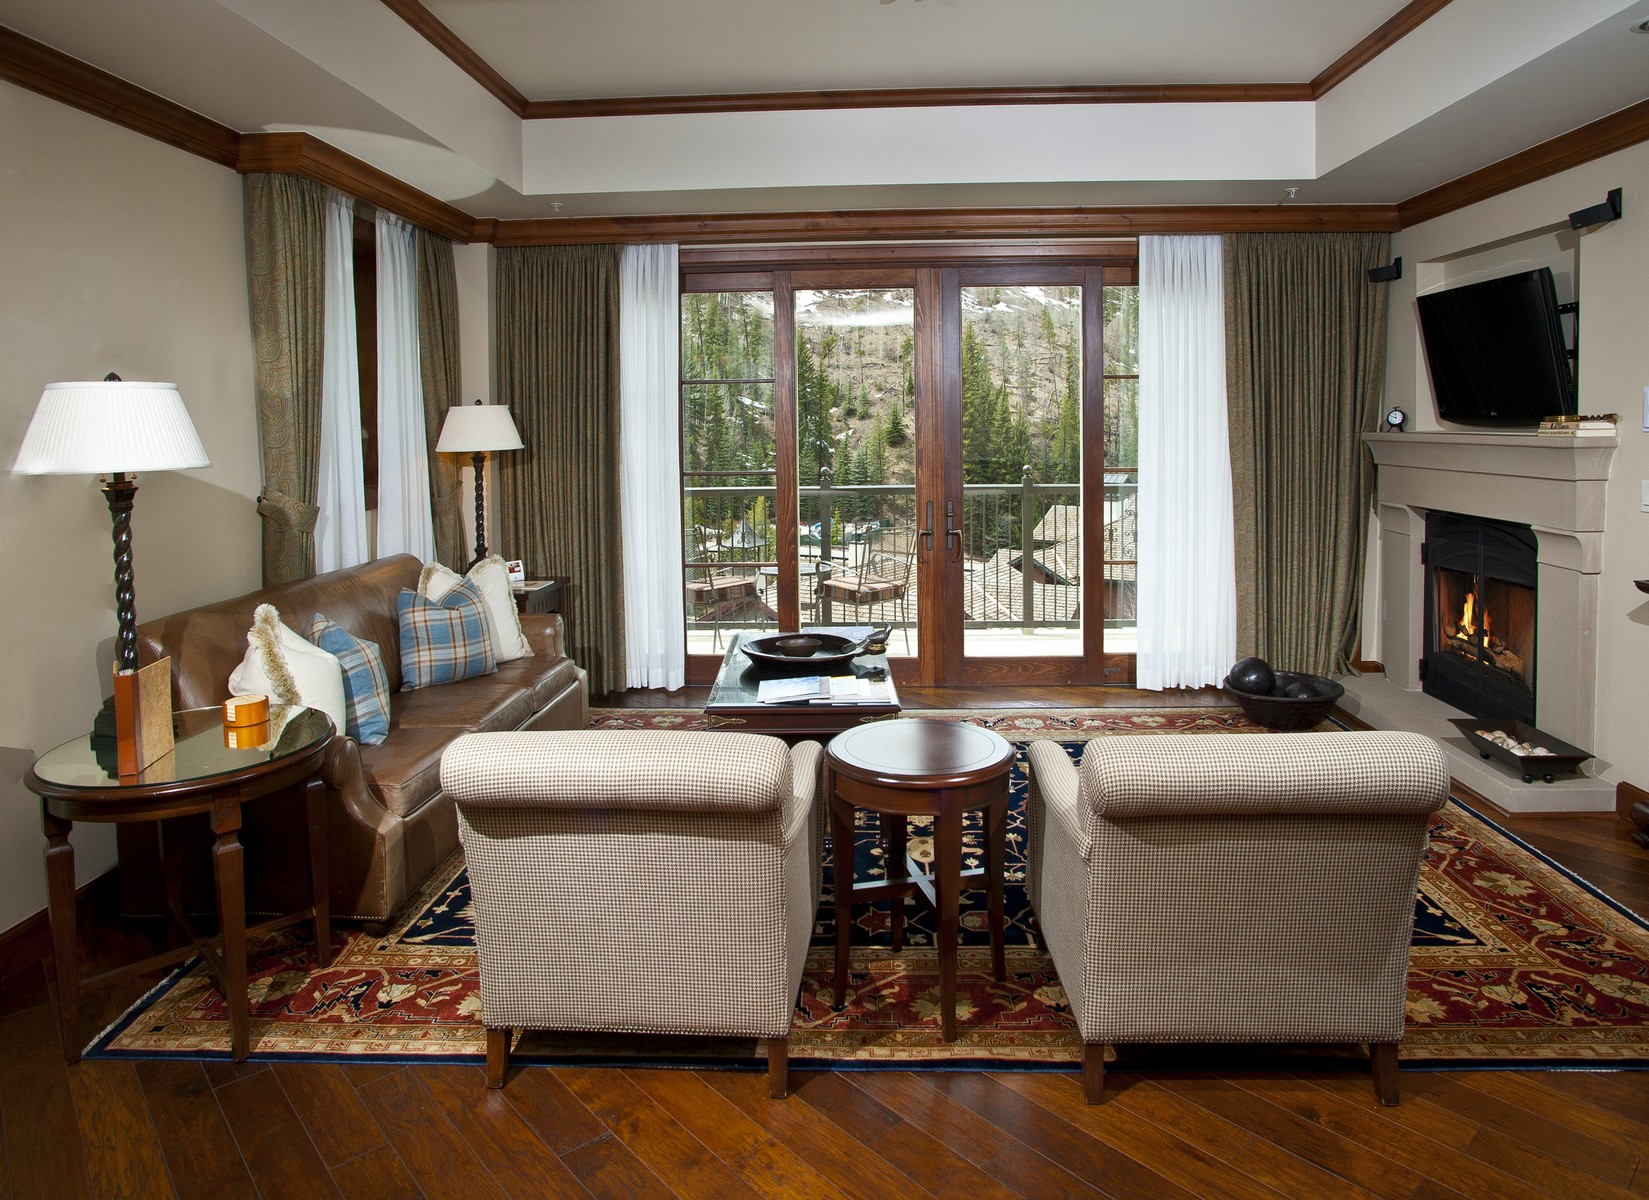 Fractional Ownership for Sale at The Ritz-Carlton Club 728 W Lionshead Cir #224 Lionshead, Vail, Colorado, 81657 United States